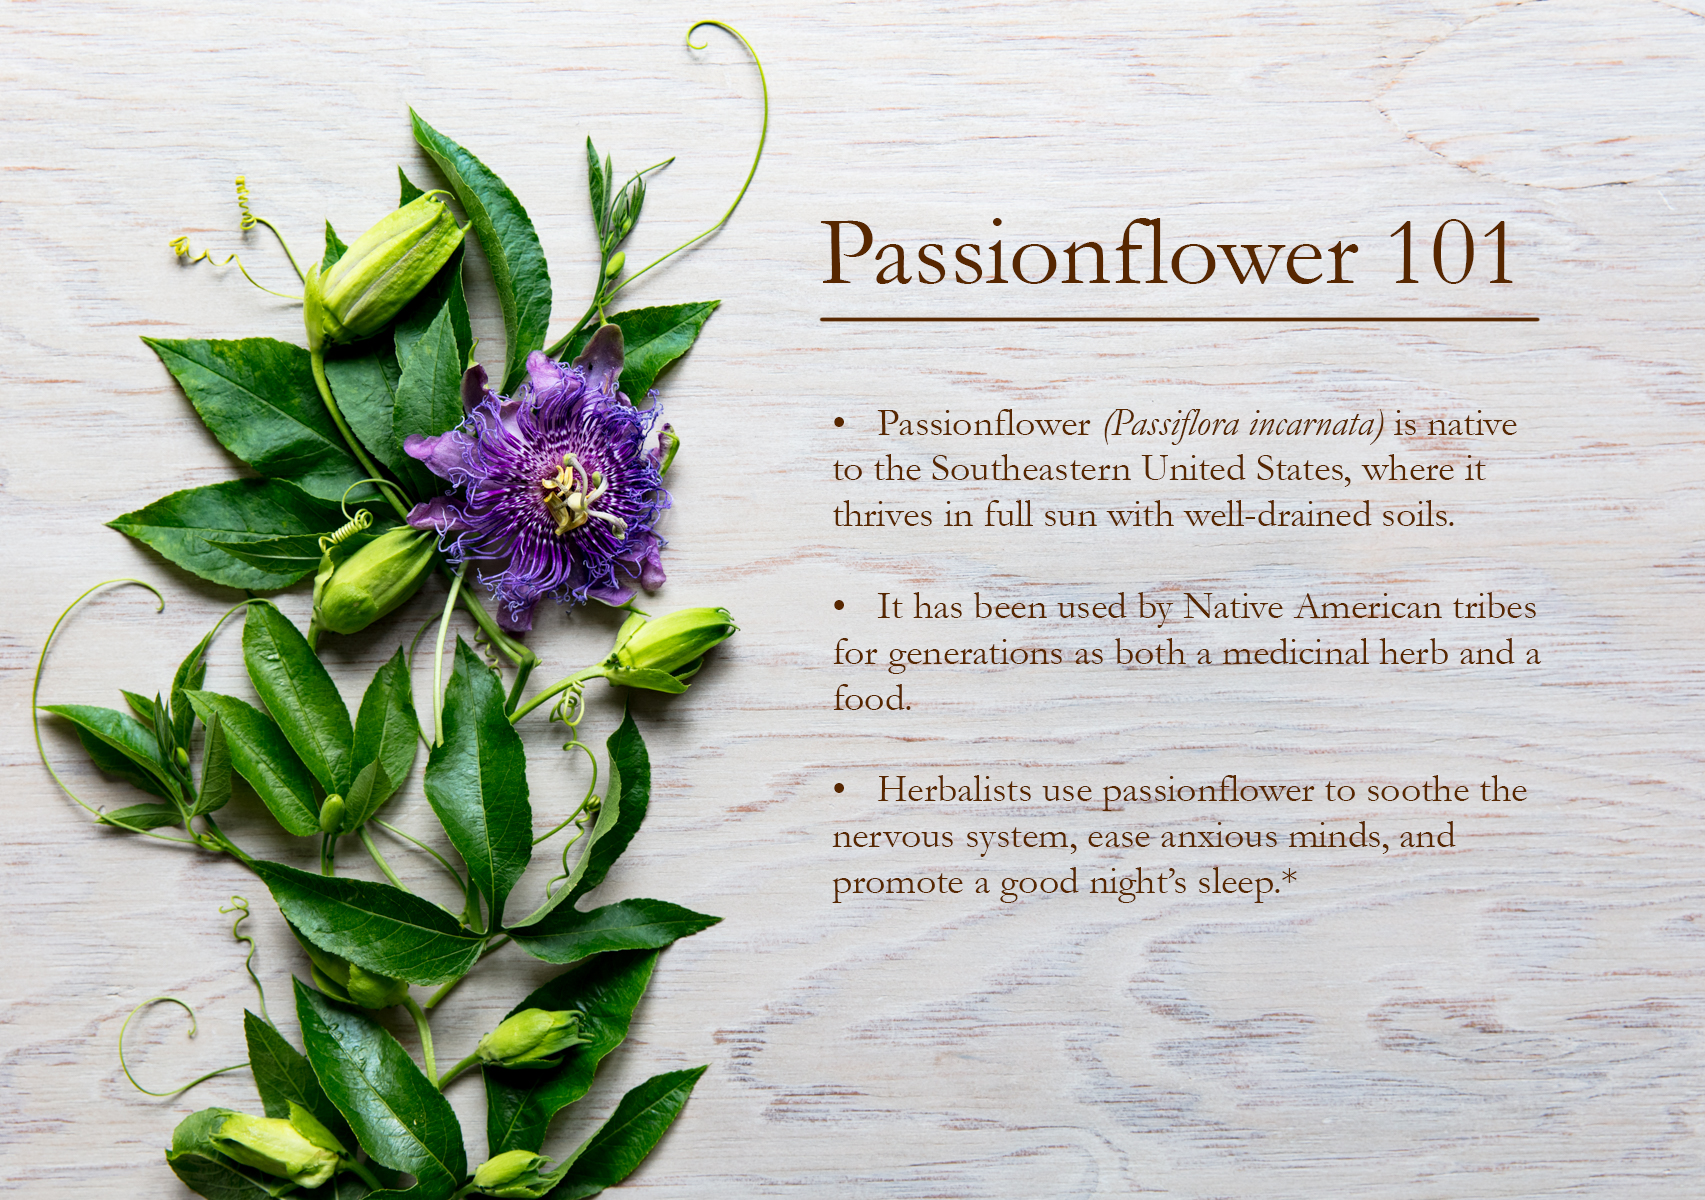 Passionflower 101 Traditional Medicinals Herbal Wellness Teas Passion Flower Herbalism Medicinal Herbs